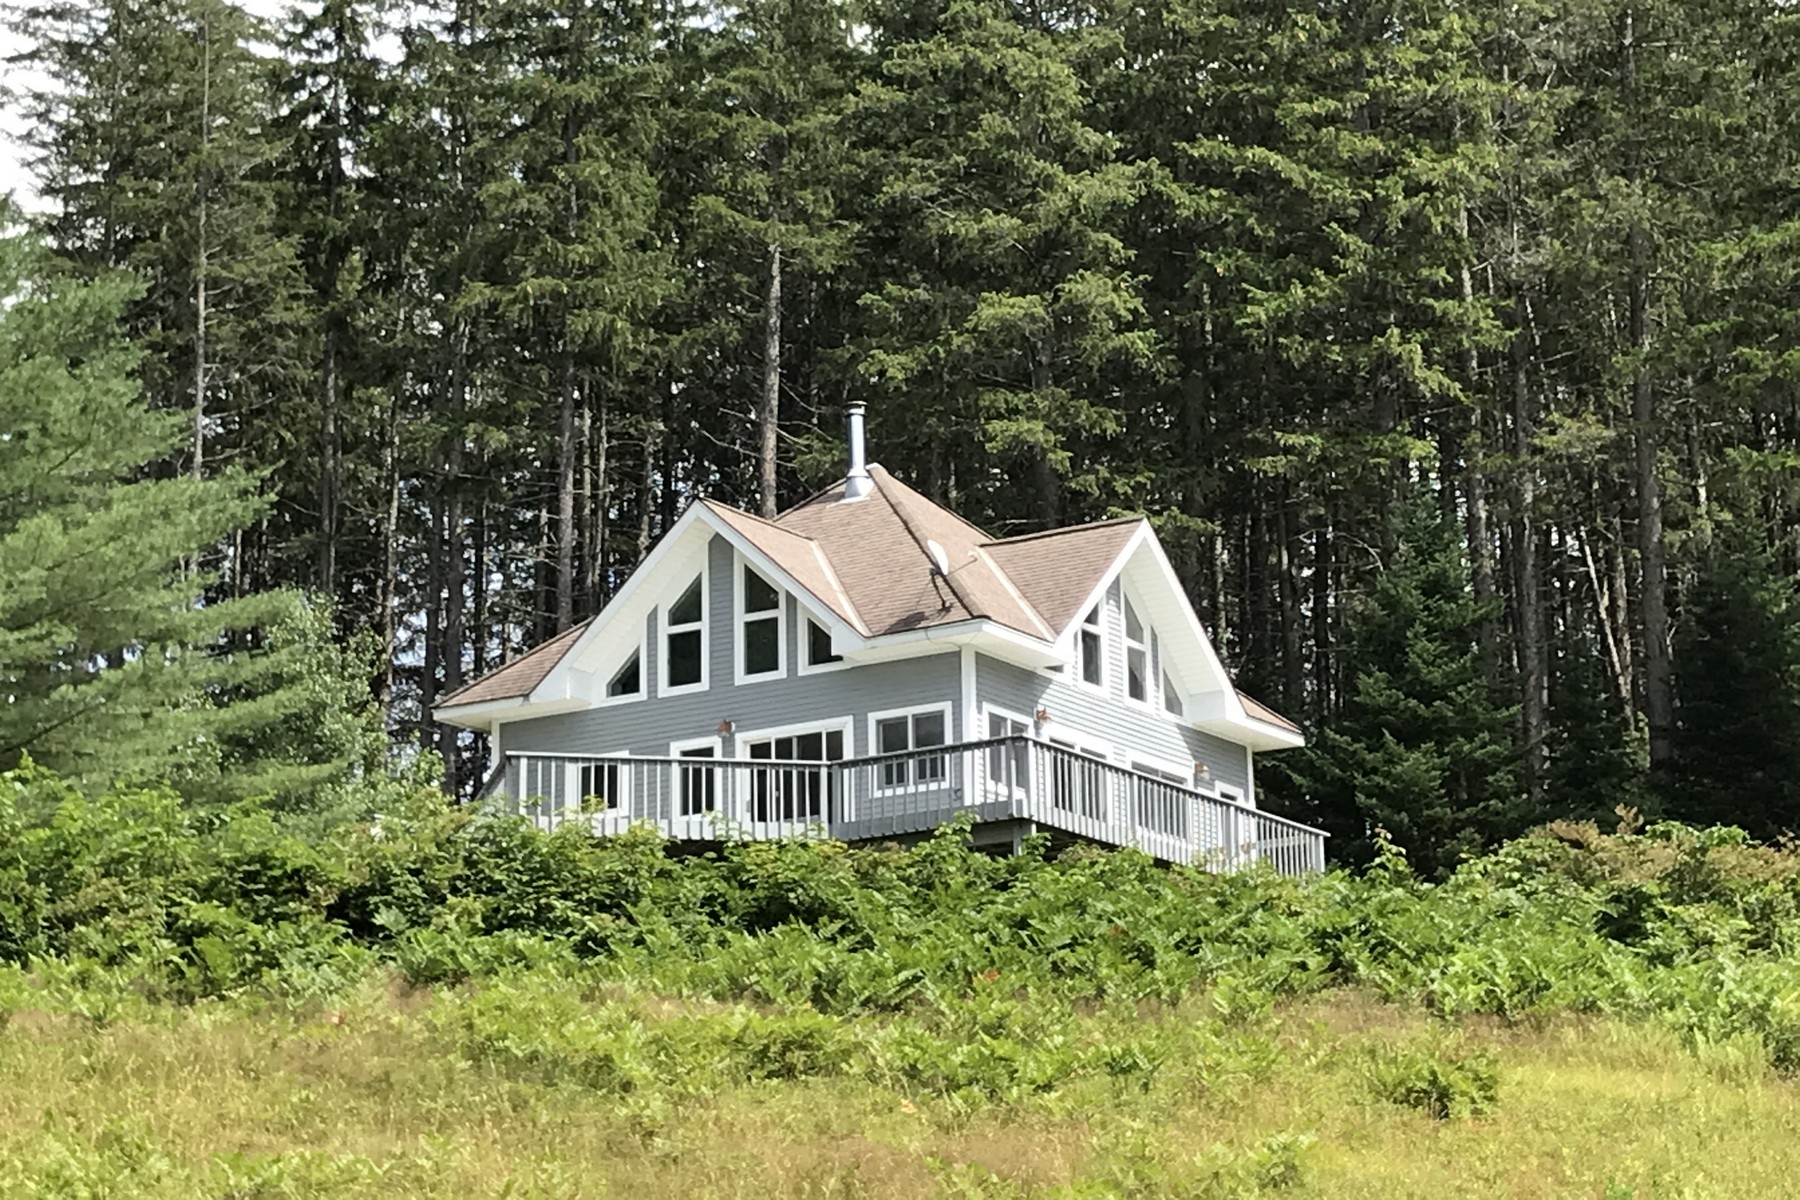 Single Family Home for Sale at Revamped Contemporary 324 Vt Route 100 Weston, Vermont 05161 United States